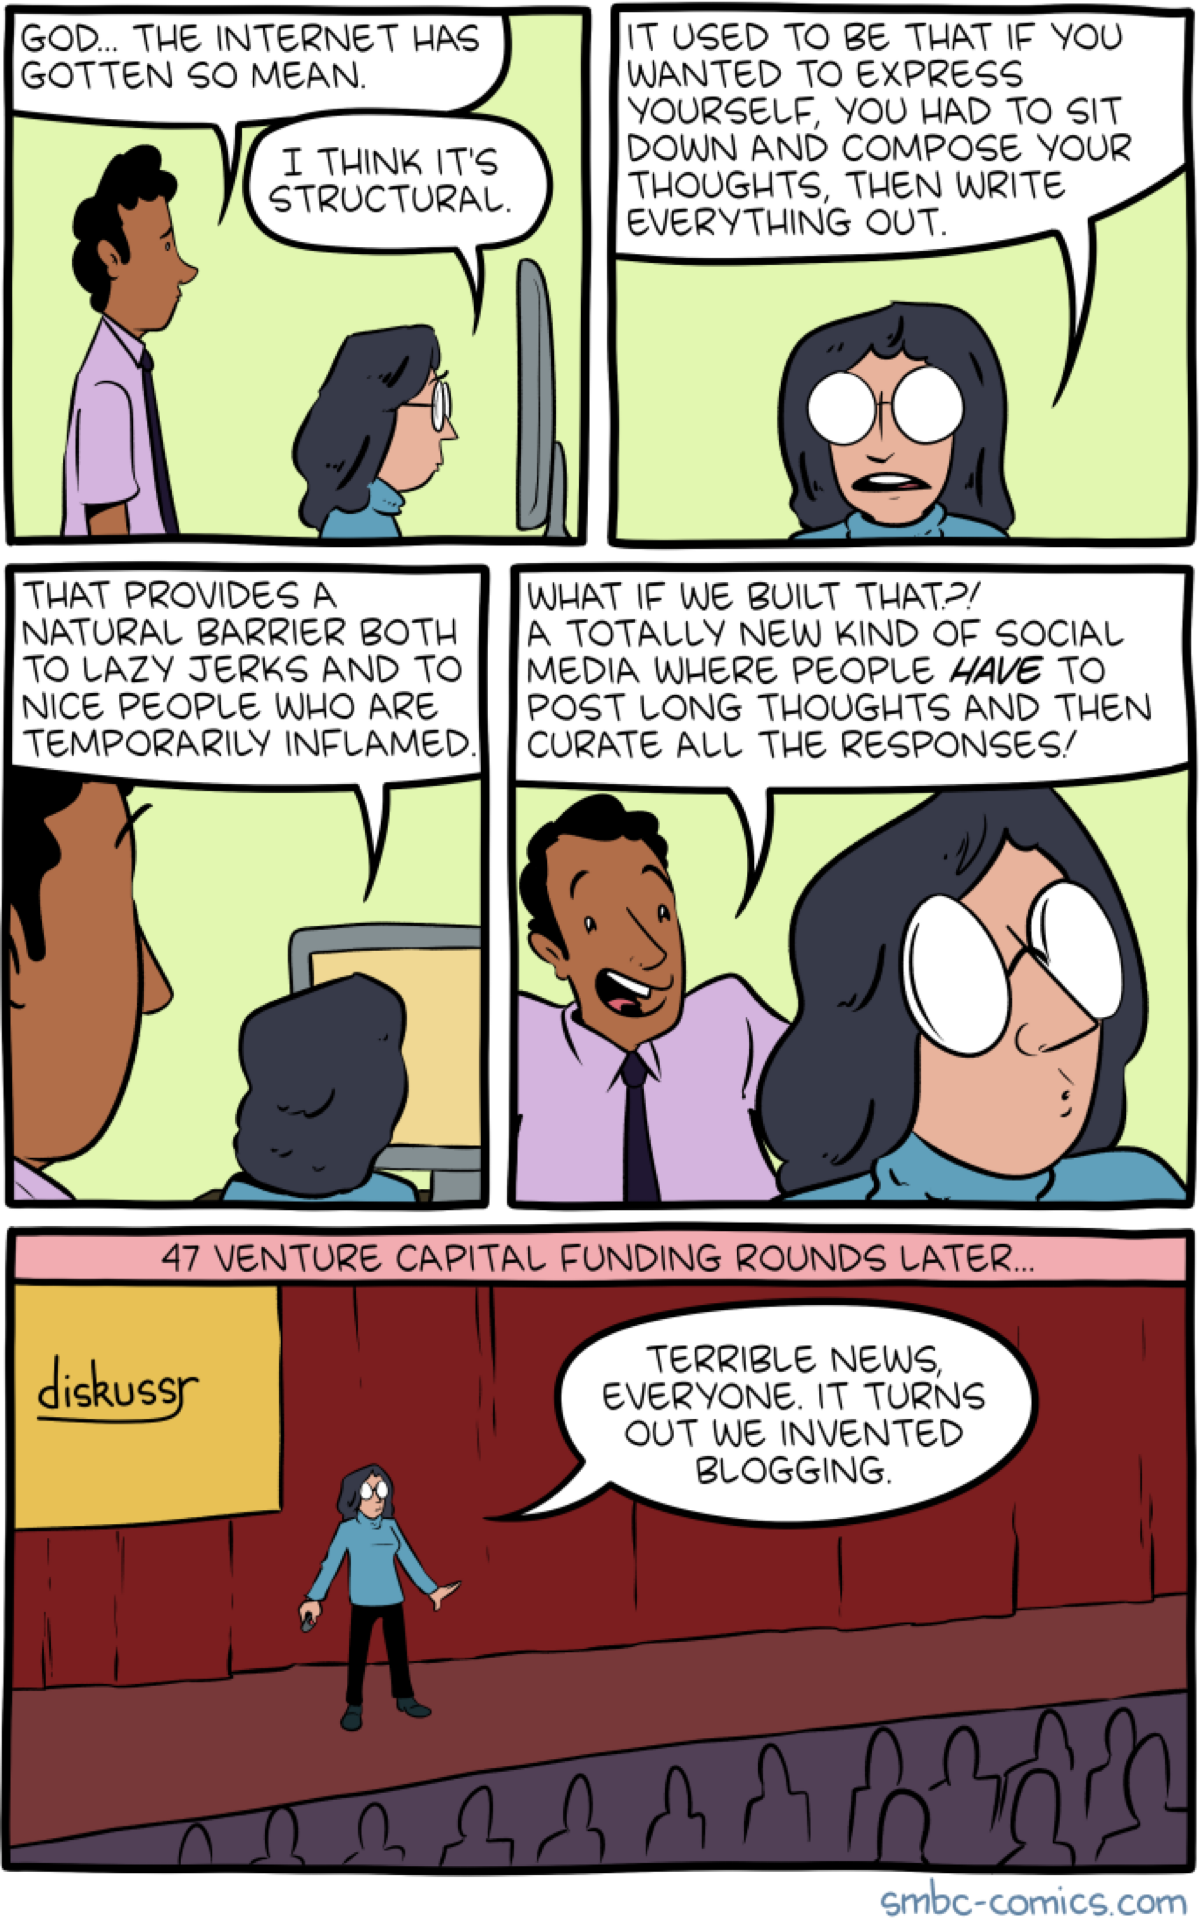 Comic by SMBC making fun of blogging